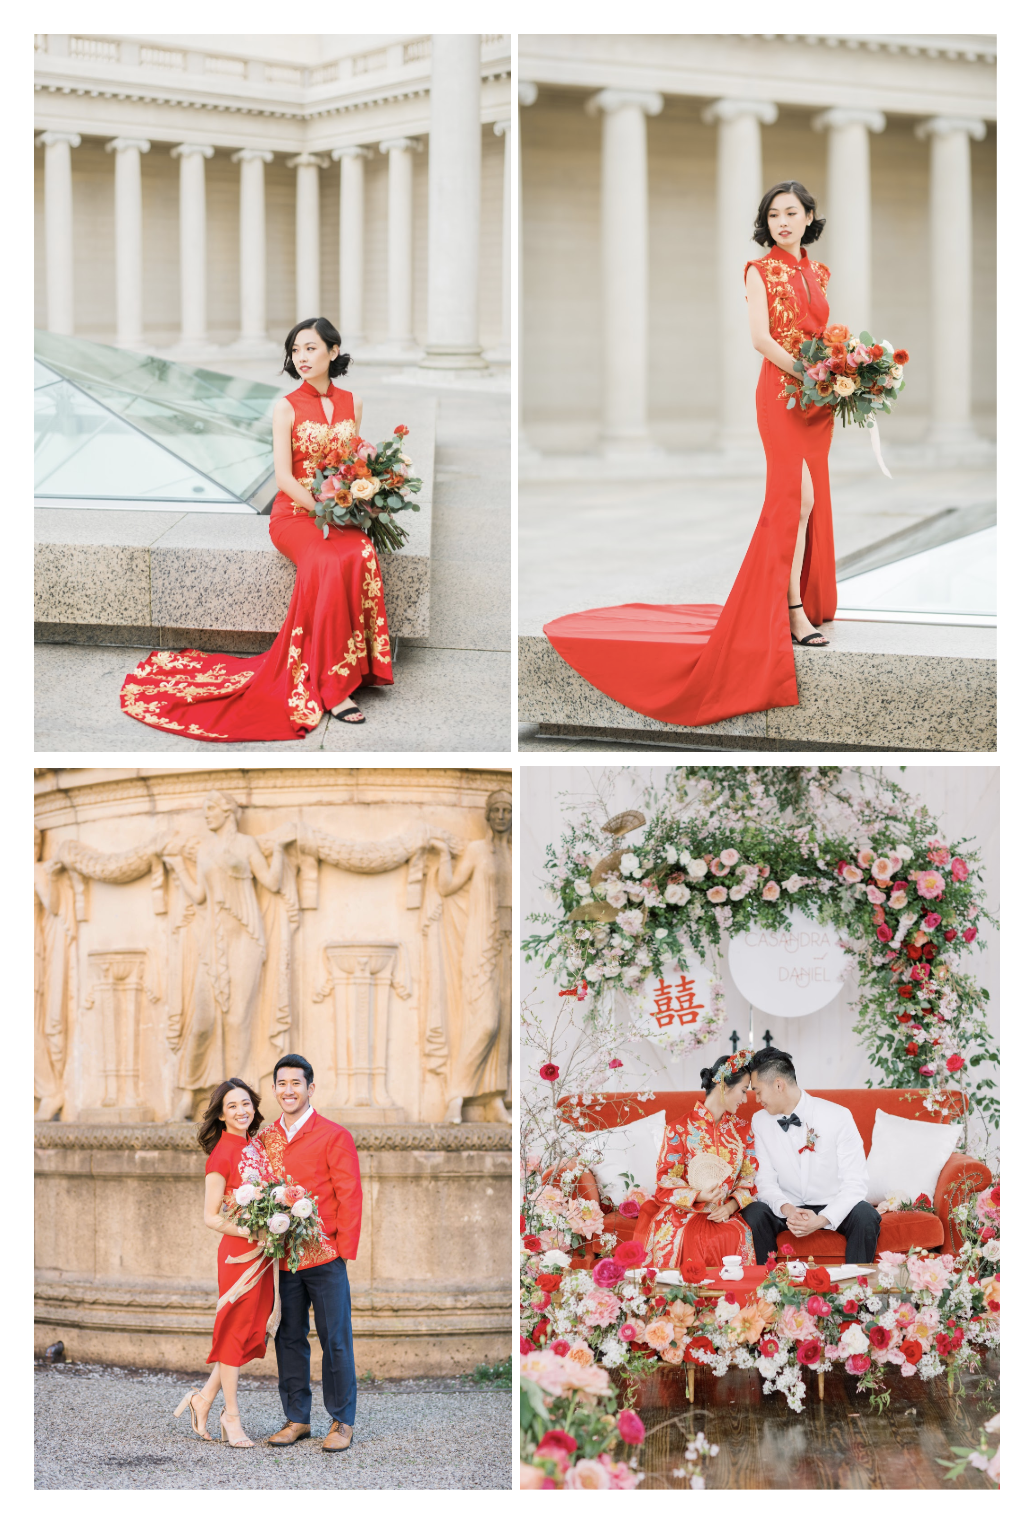 how-i-built-a-six-figure-business-bringing-asian-culture-to-the-american-wedding-industry